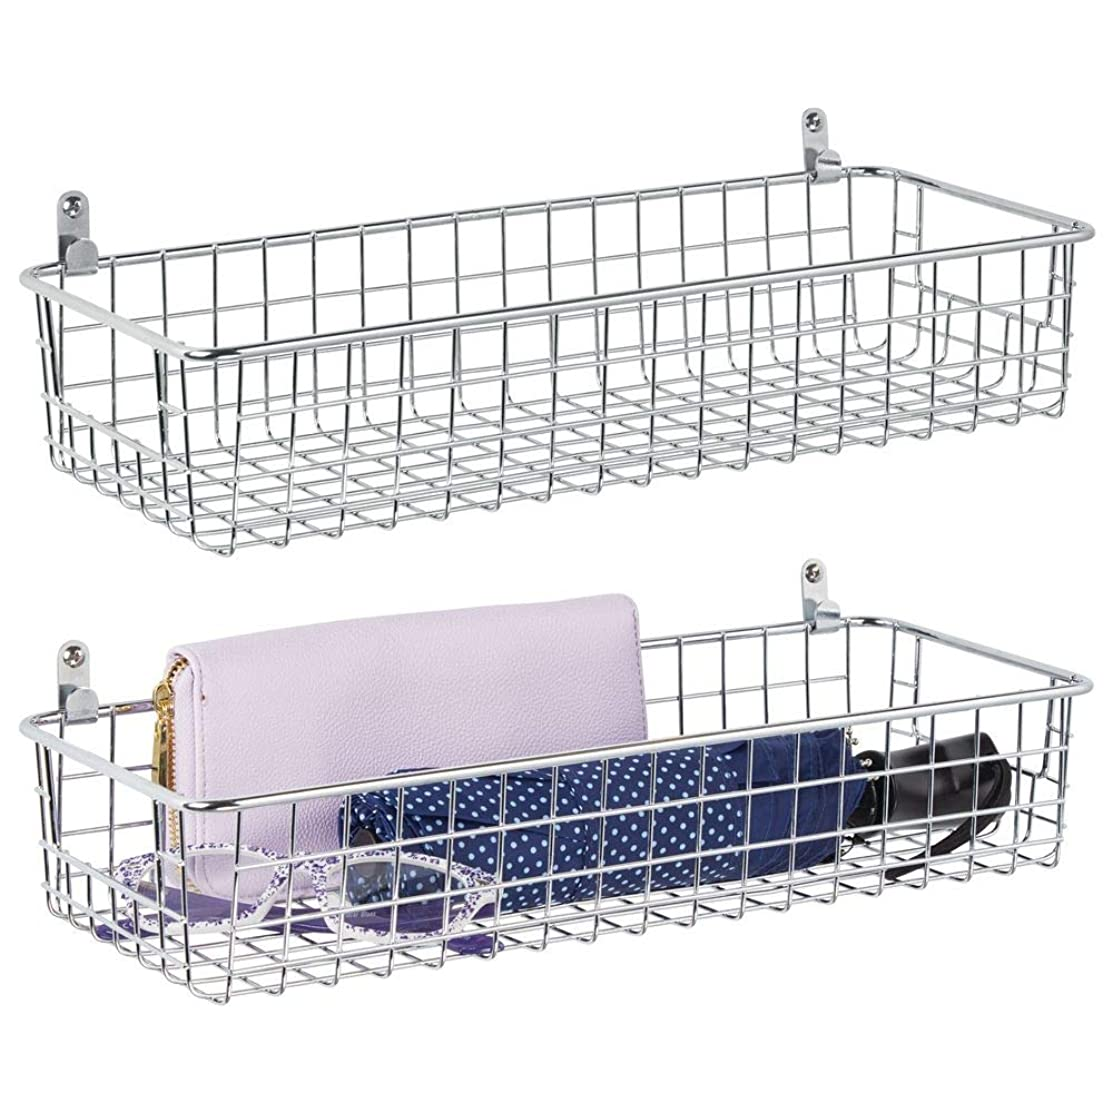 mDesign Portable Metal Farmhouse Wall Decor Storage Organizer Basket Shelf with Handles for Hanging in Entryway, Mudroom, Bedroom, Bathroom, Laundry Room - Wall Mount Hooks Included, 2 Pack - Chrome